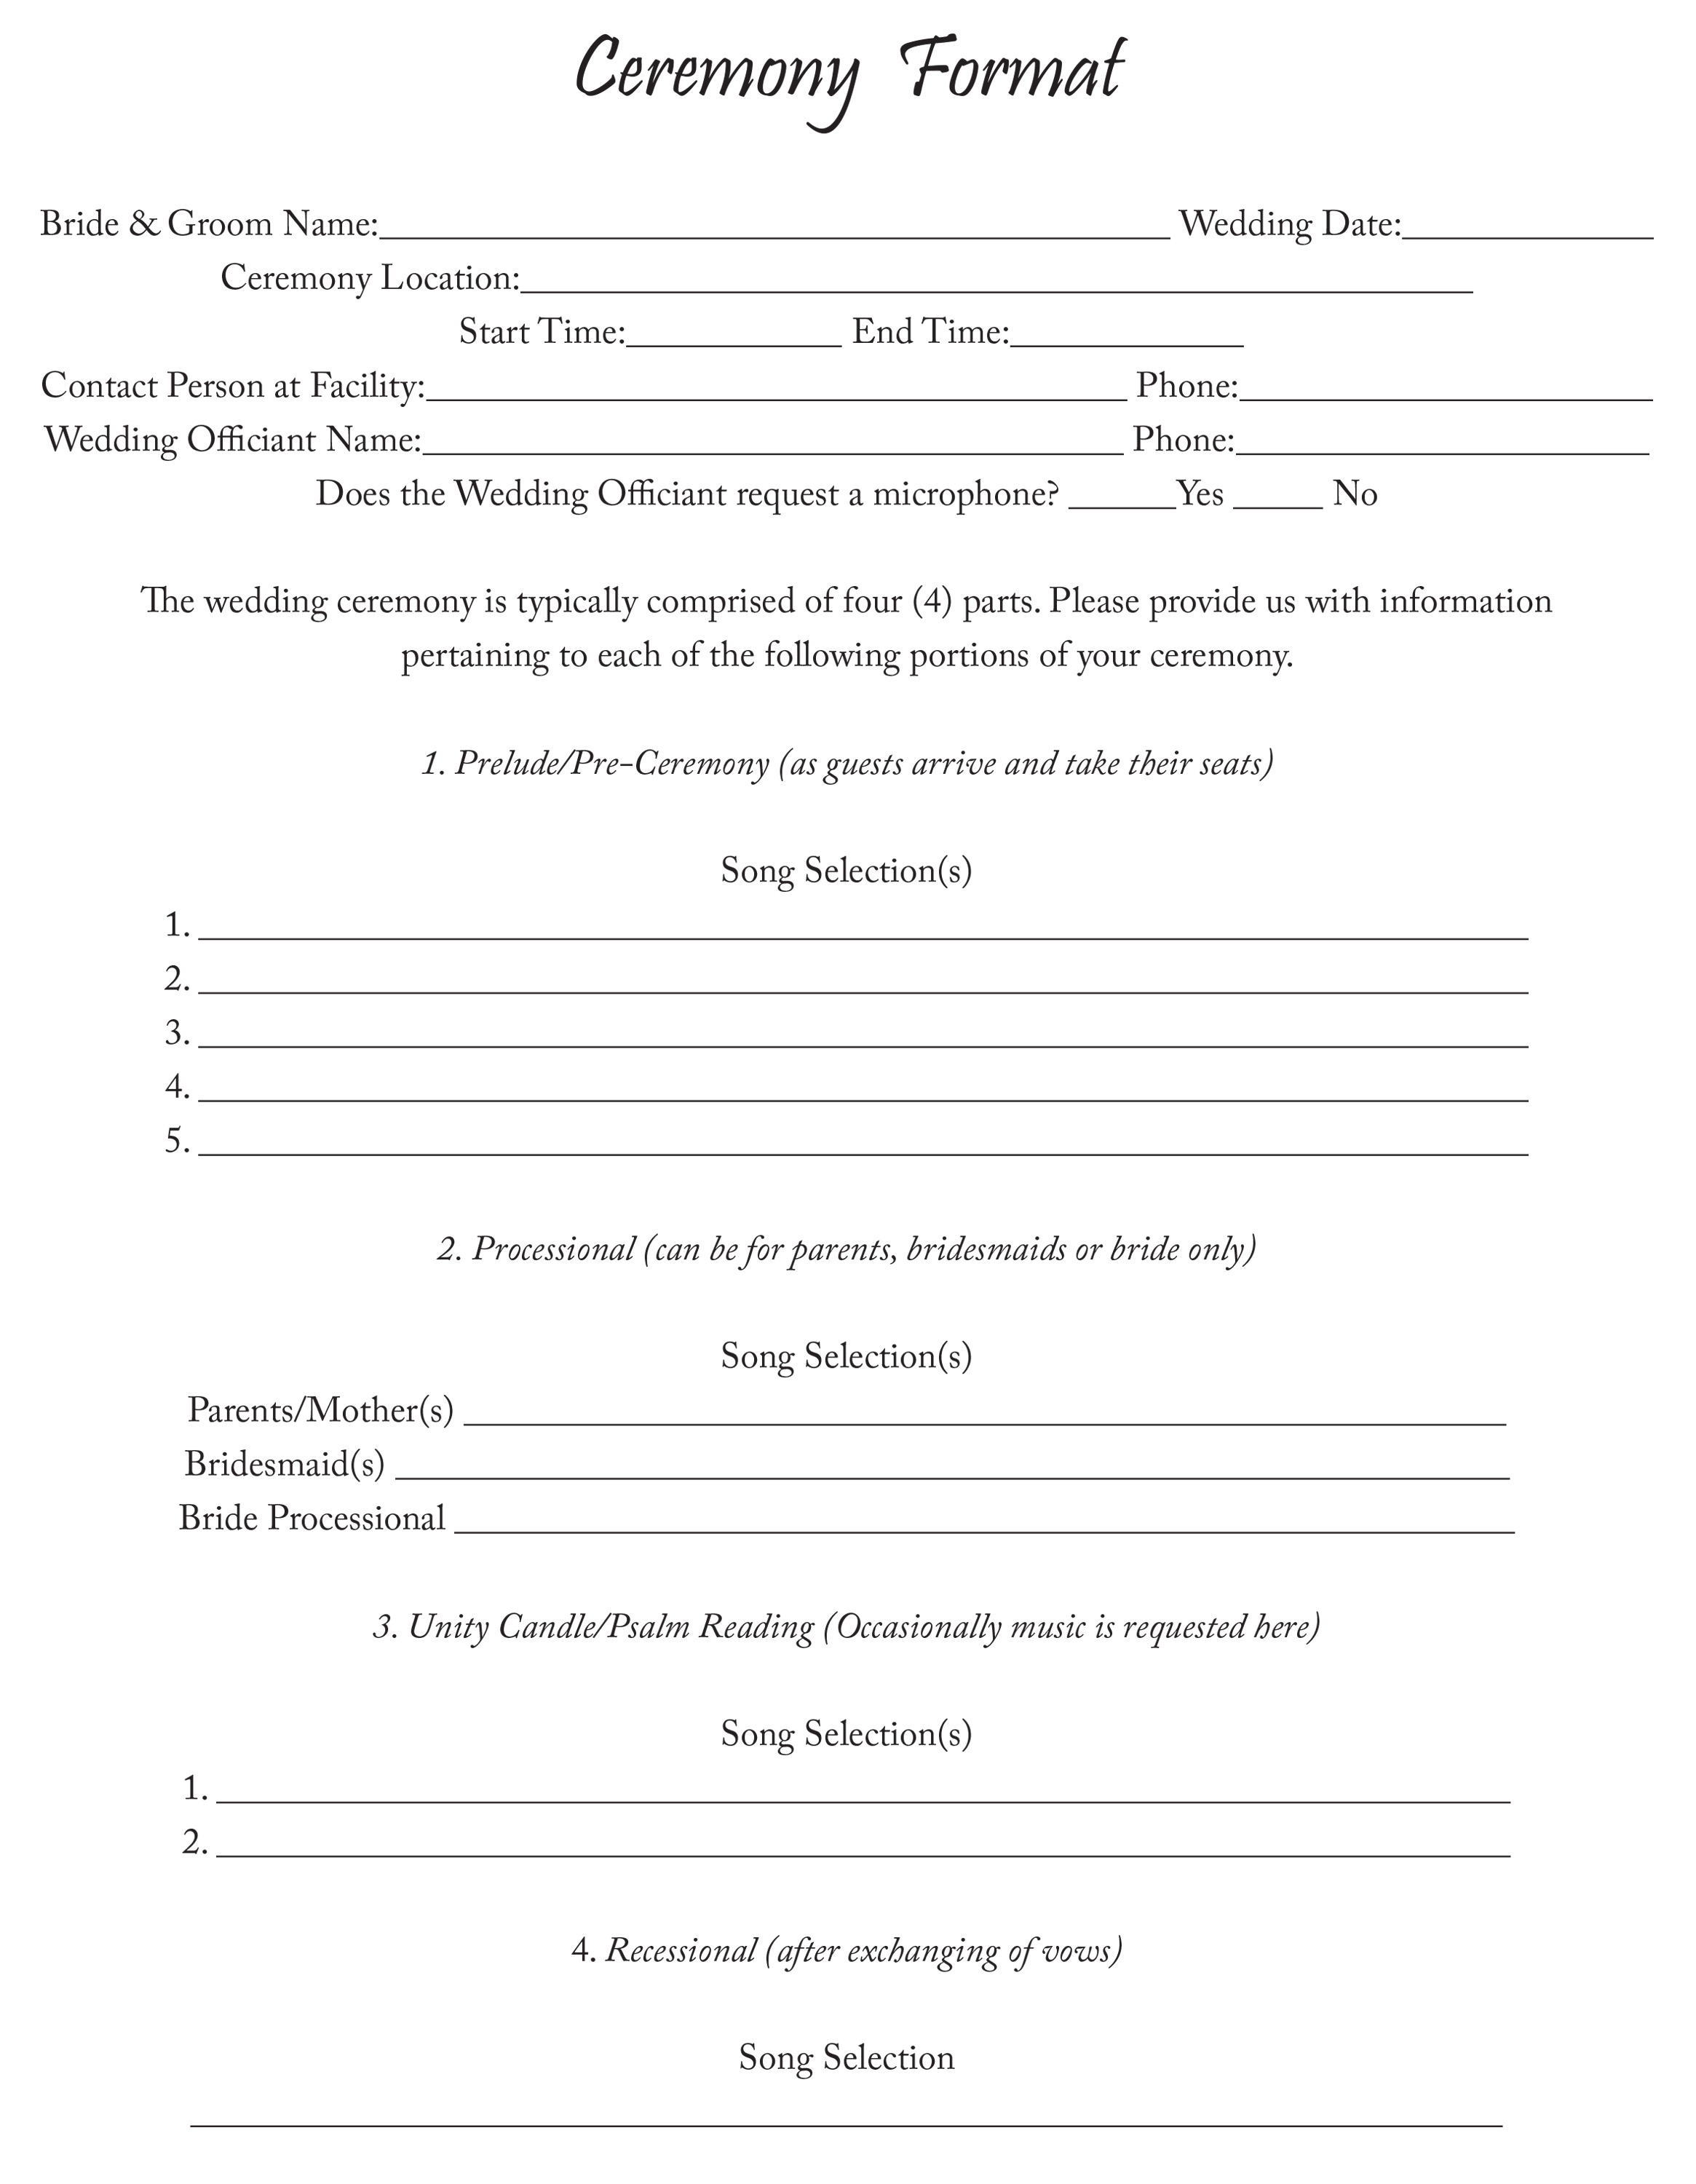 Ceremony Format Sheet